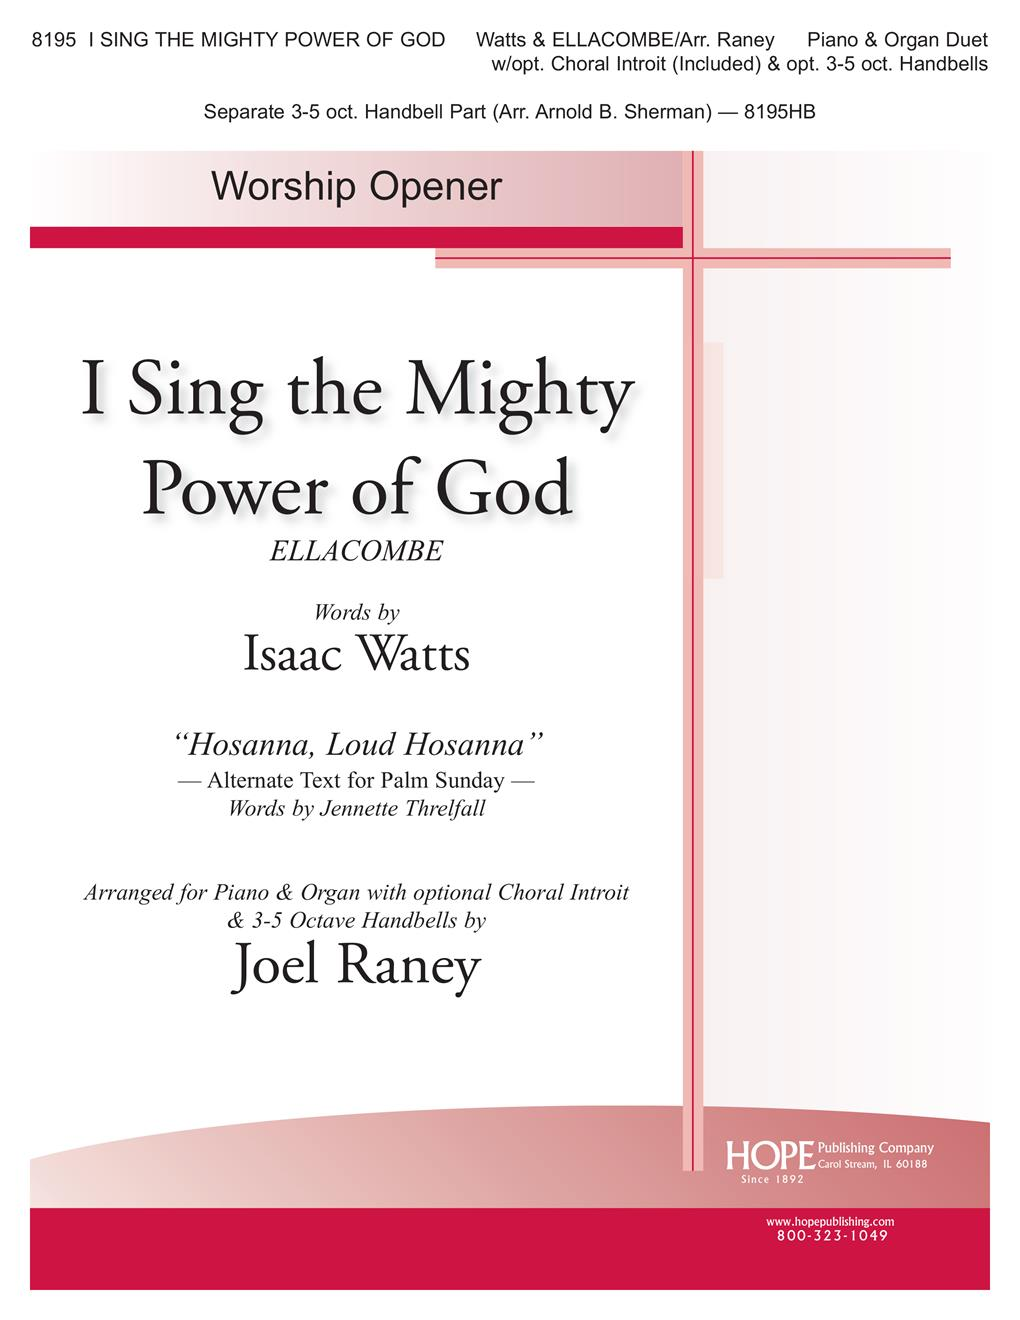 I Sing the Mighty Power of God - Organ-Piano Duet Cover Image